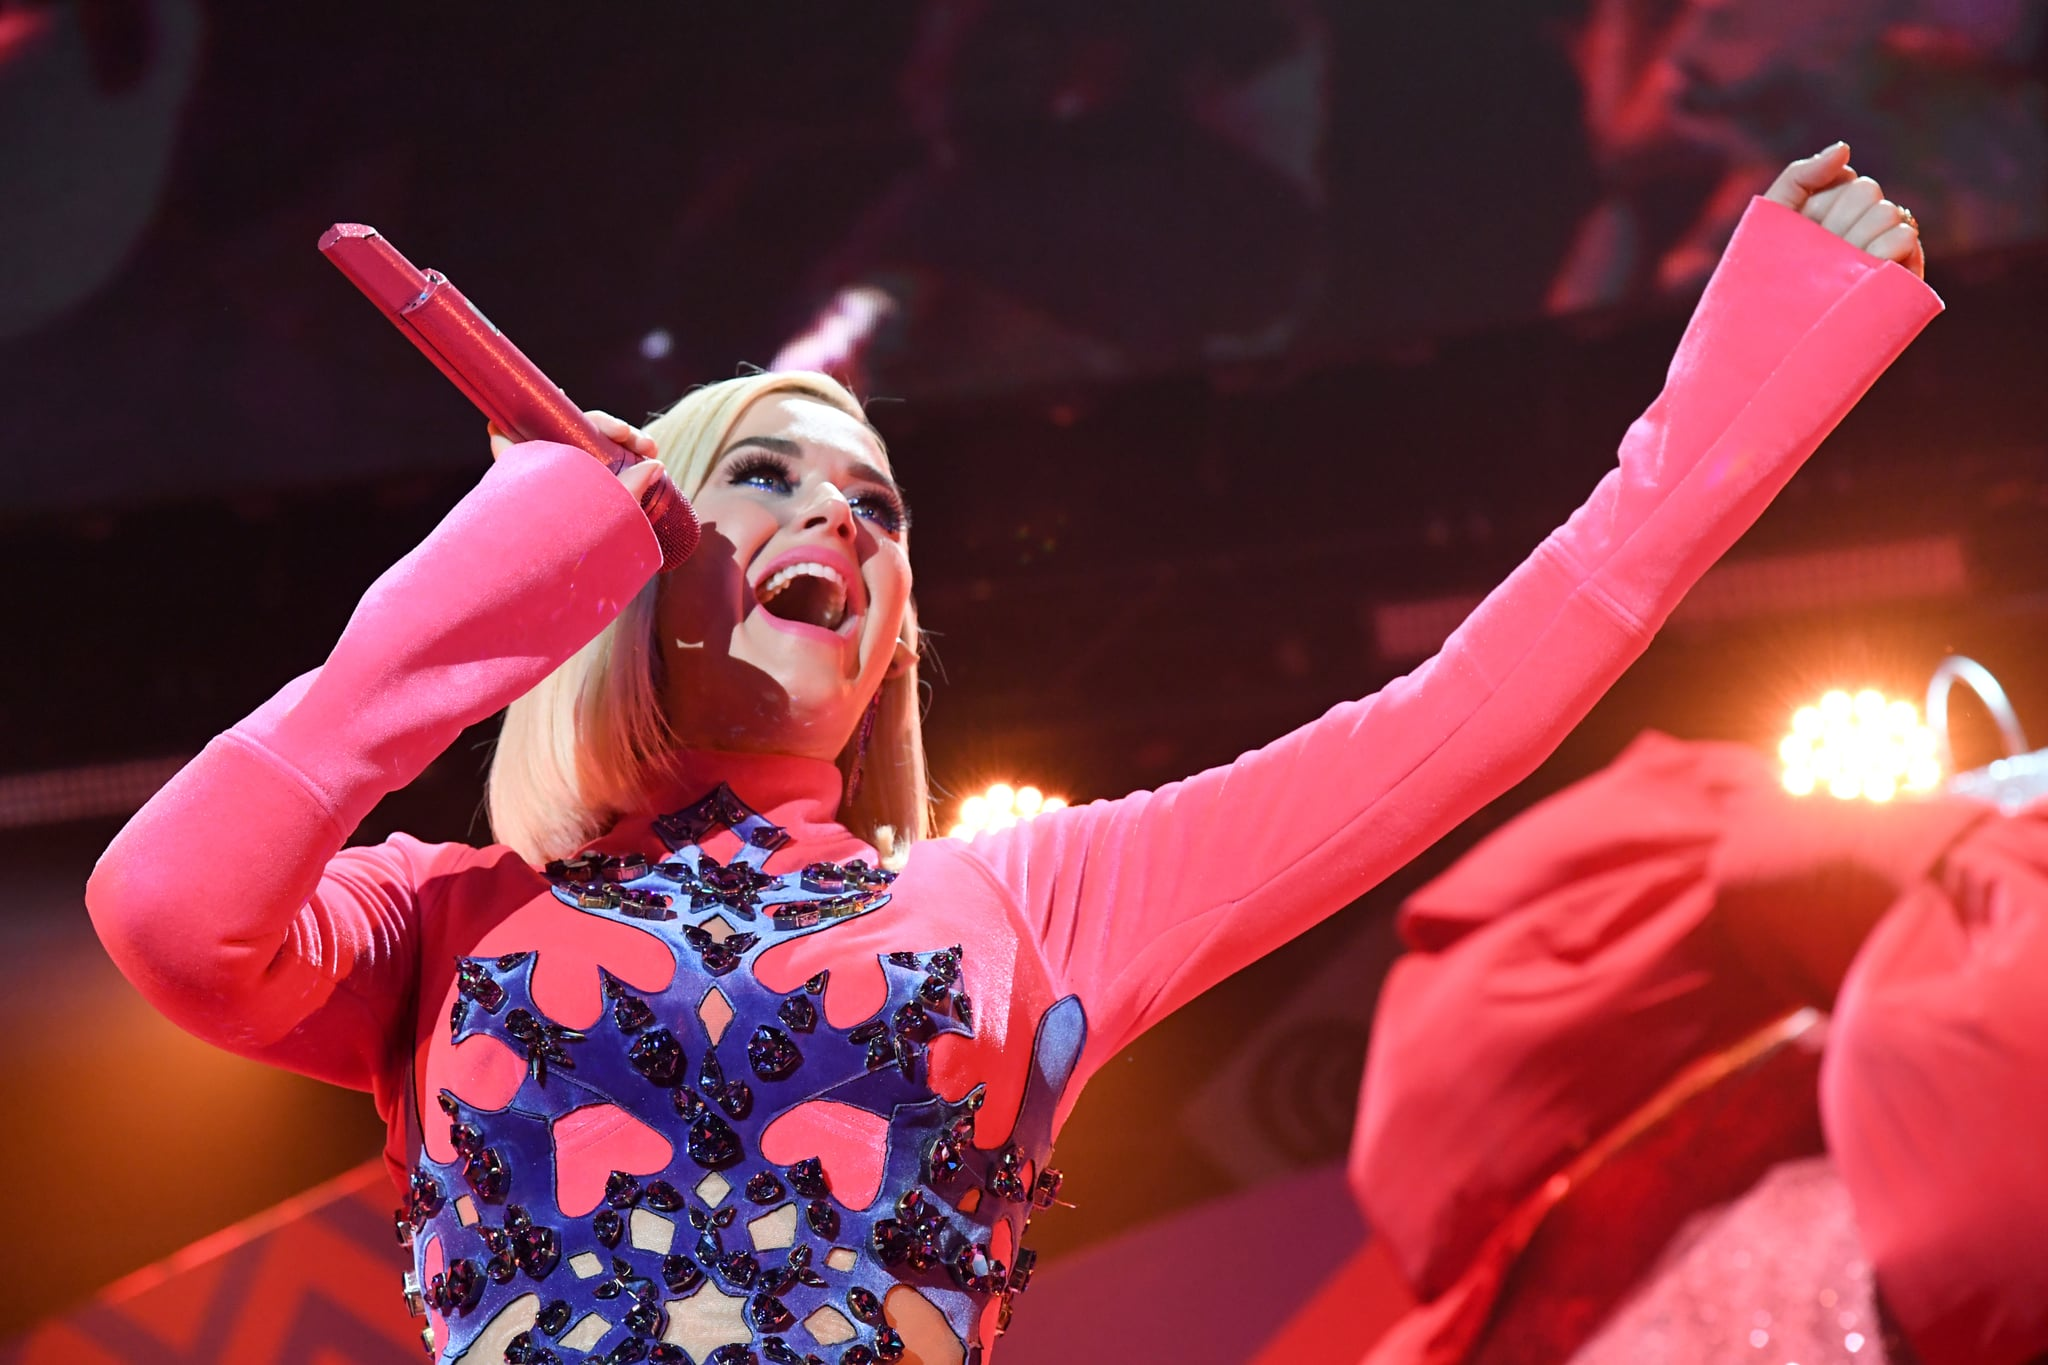 INGLEWOOD, CALIFORNIA - DECEMBER 06: (EDITORIAL USE ONLY. NO COMMERCIAL USE.) Katy Perry performs onstage during 102.7 KIIS FM's Jingle Ball 2019 Presented by Capital One at the Forum on December 6, 2019 in Los Angeles, California. (Photo by Jeff Kravitz/FilmMagic for iHeartMedia)